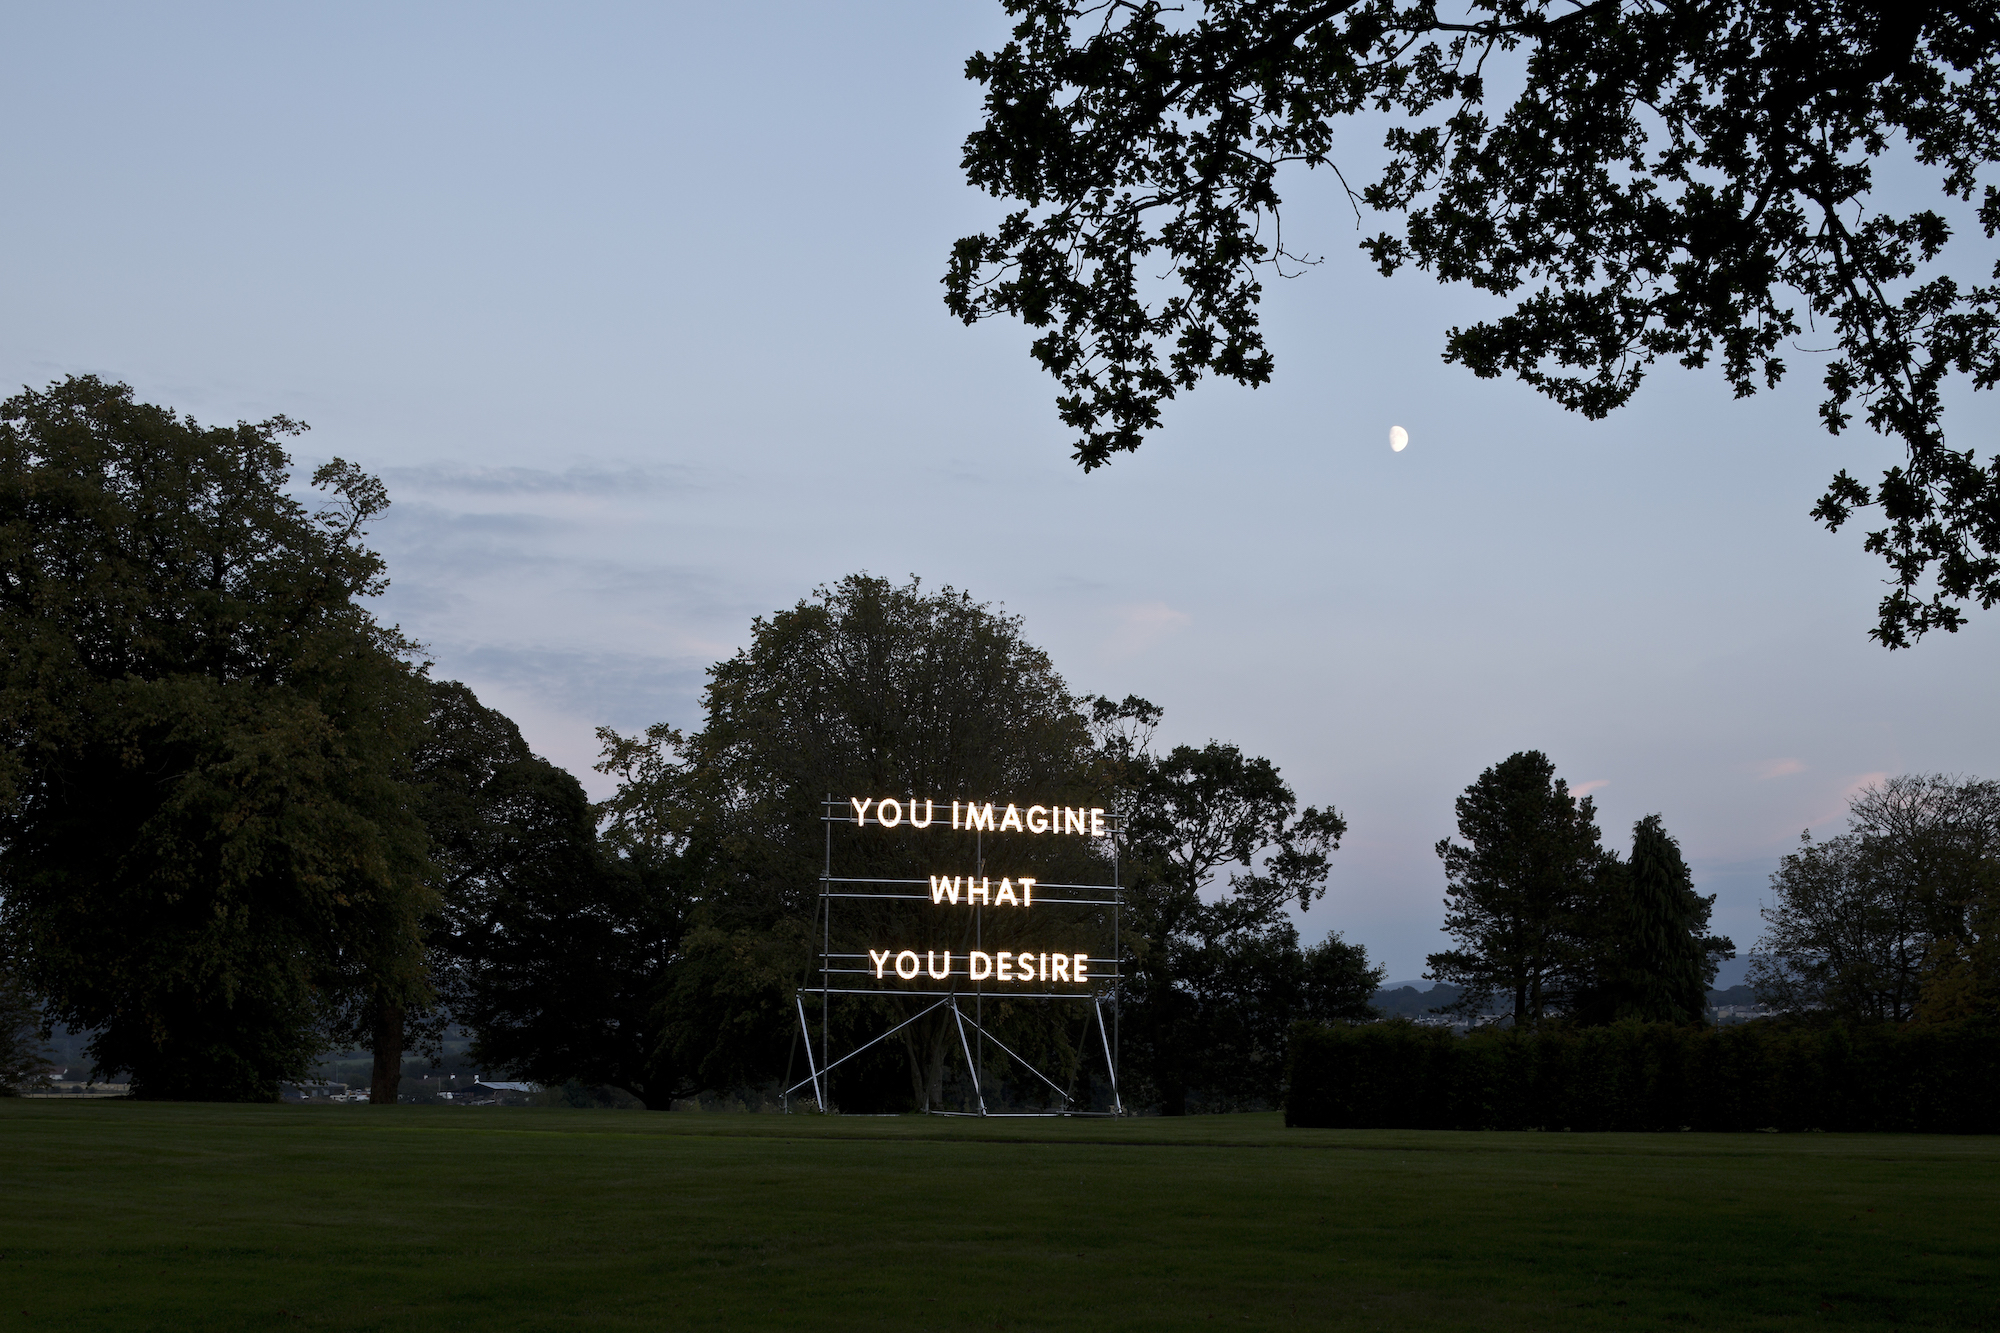 Nathan Coley, You Imagine What You Desire, 201